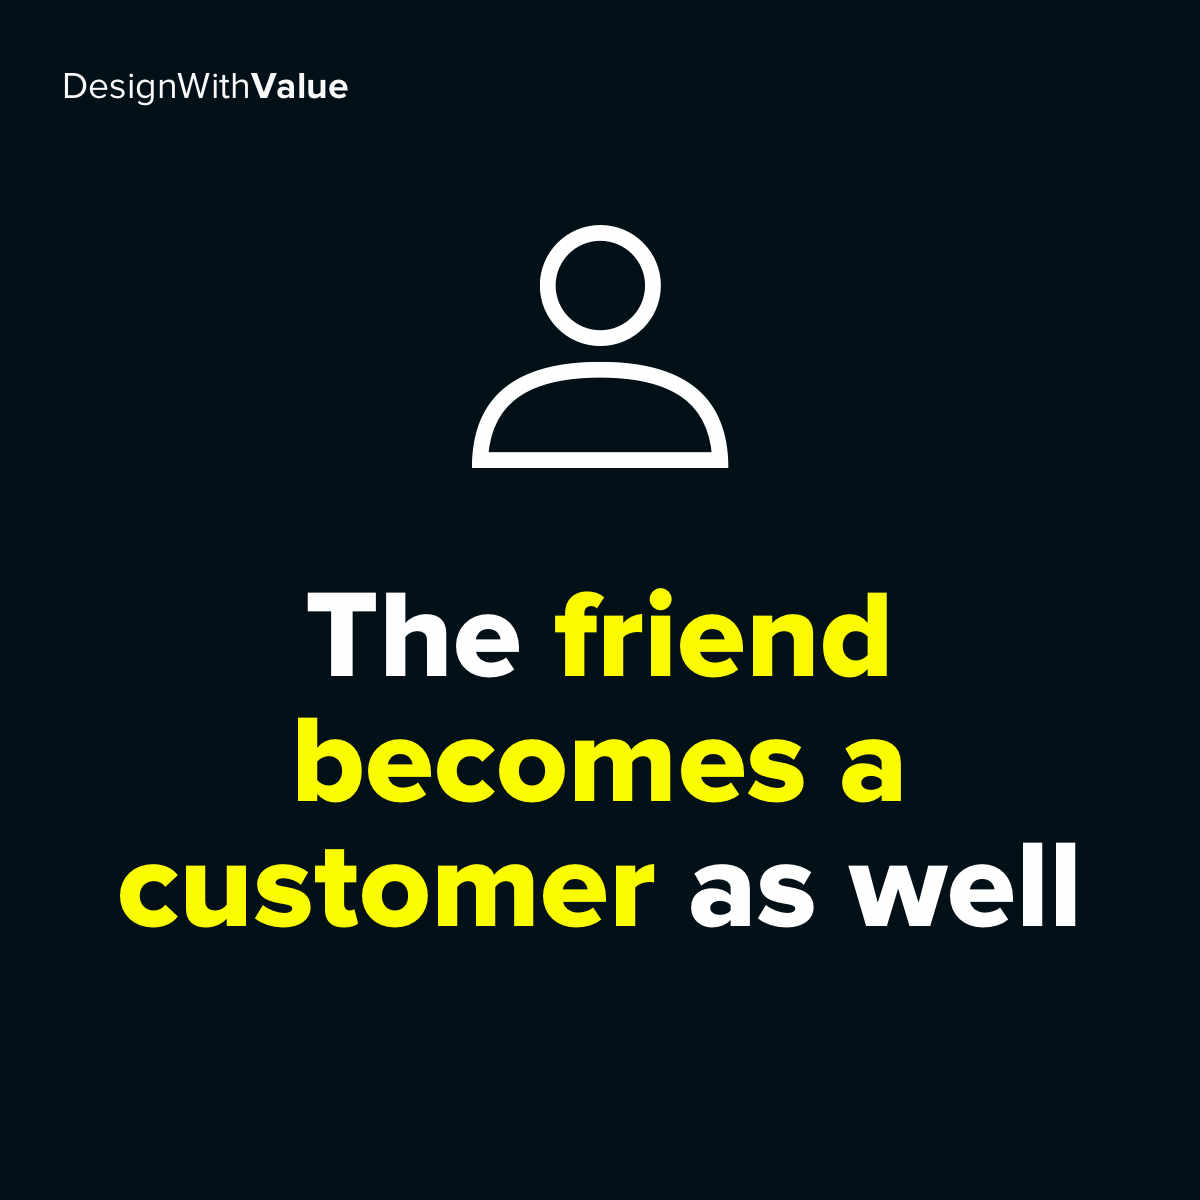 The friend becomes a customer as well.